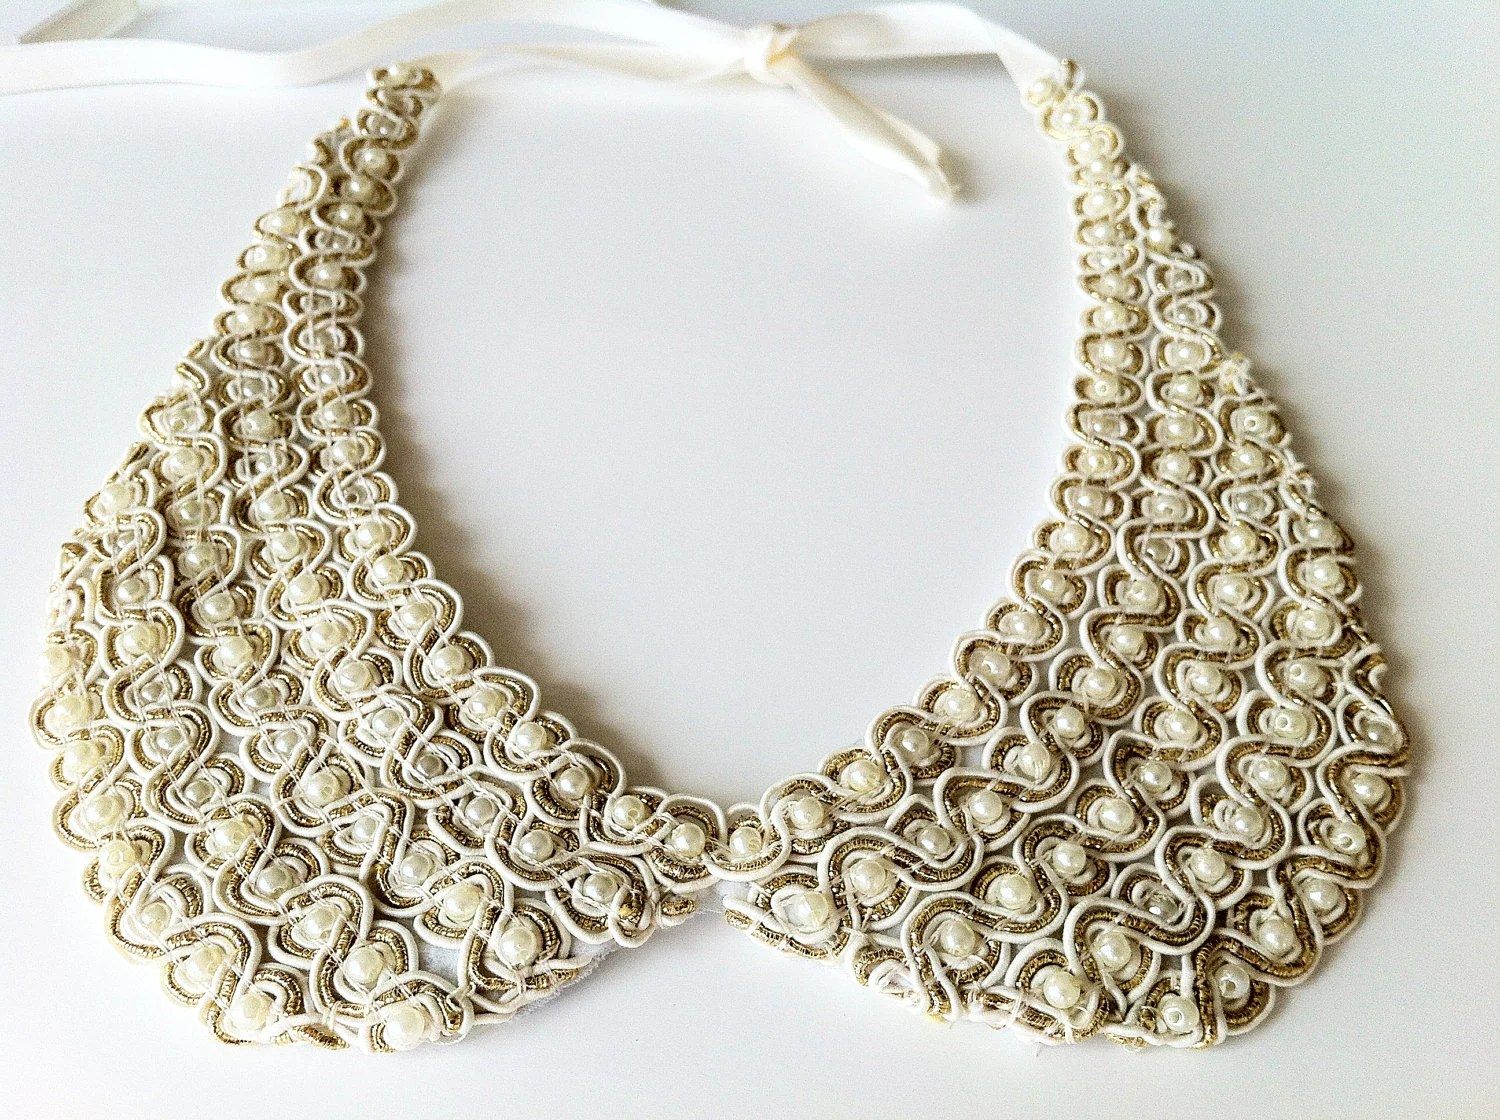 Ivory Collar Necklace, Ivory Pearl Embroidery, Gold Color Strip Decorated Detachable Collar for Women - SHECHICEXCLUSIVE